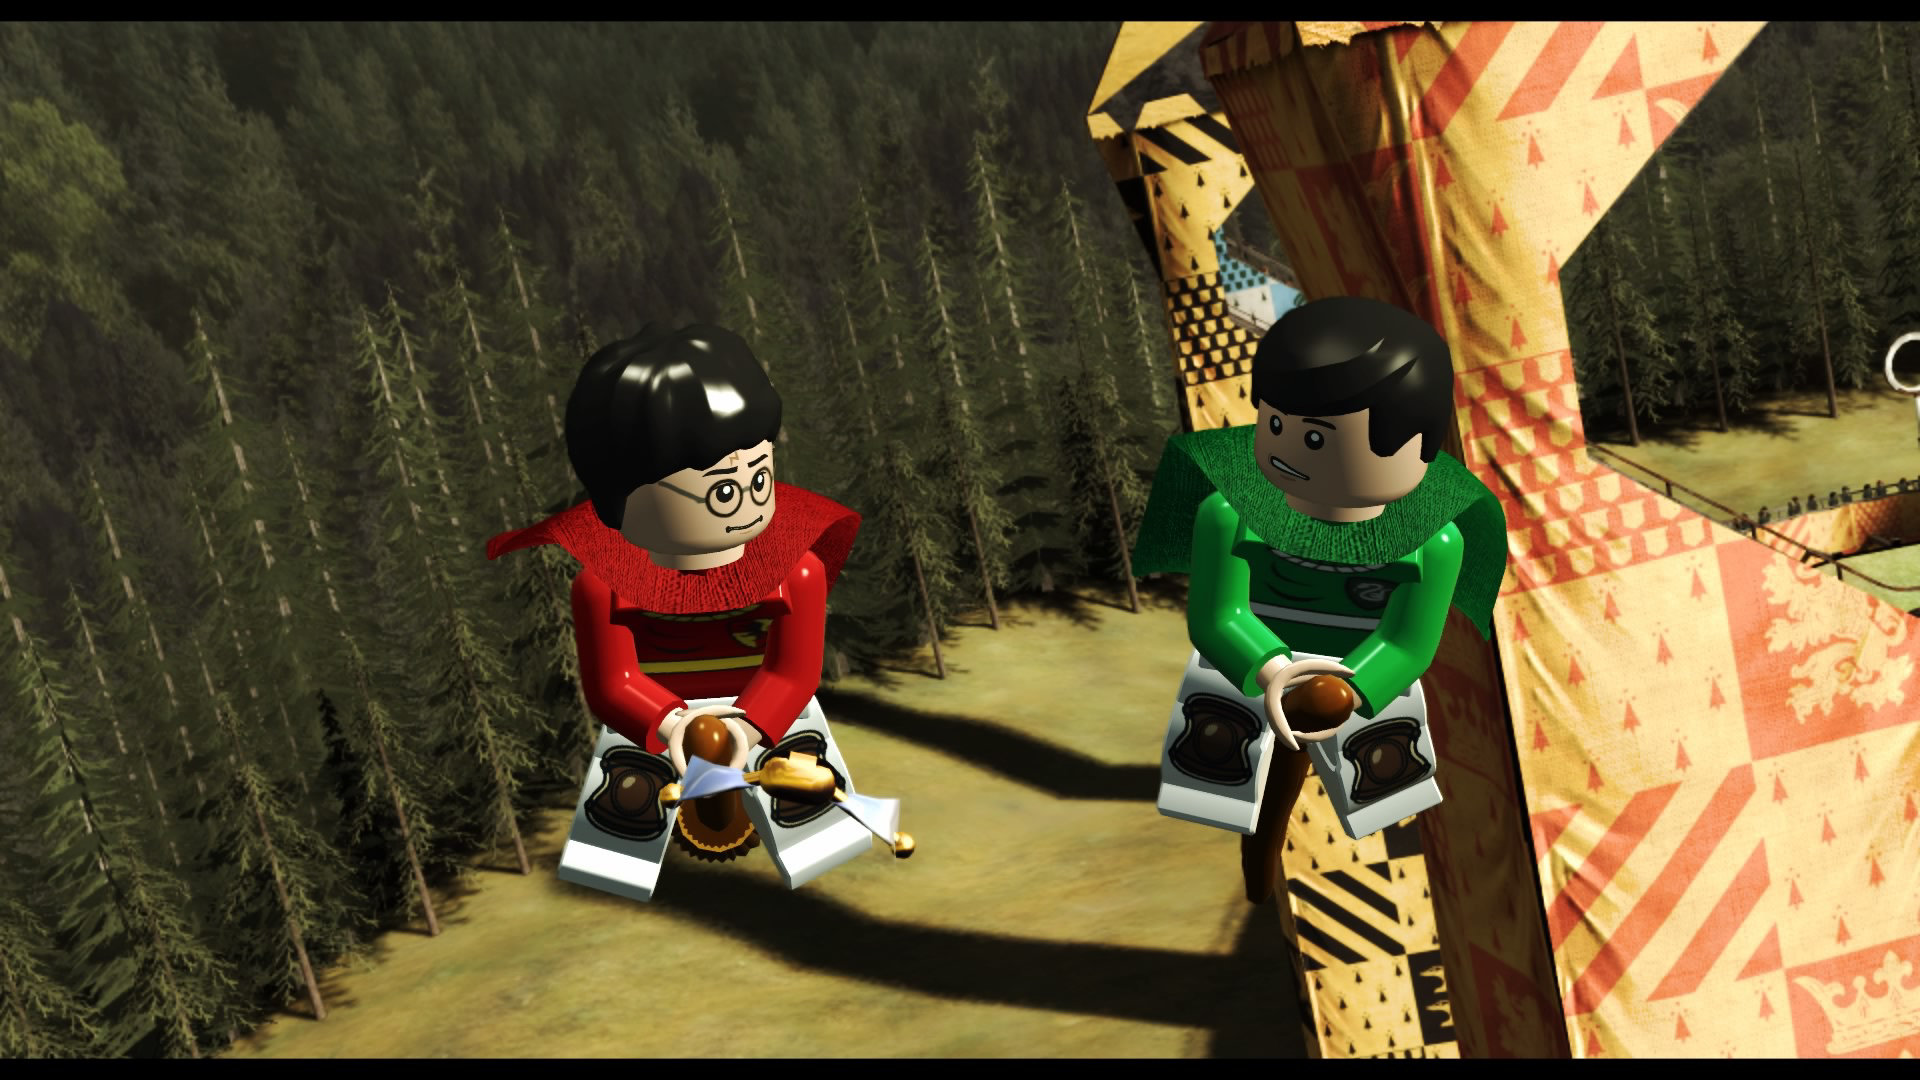 lego-harry-potter-screen-04-ps4-us-11oct16_yyb8